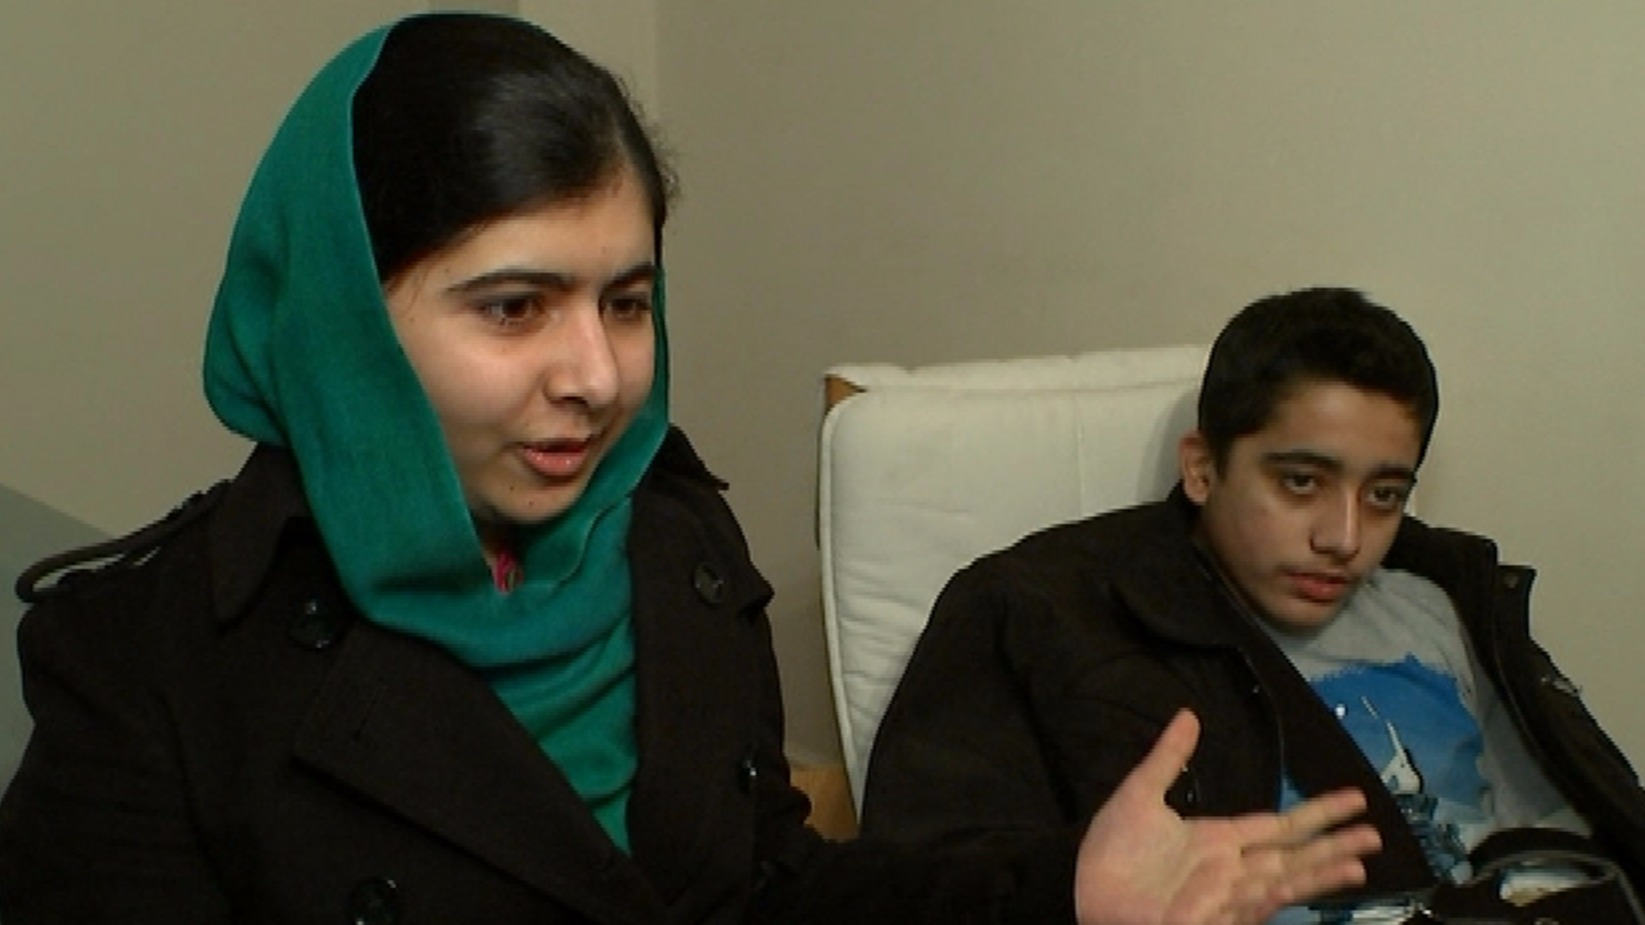 malala yousafzais fight for education In pakistan, malala says she will continue fight for girls' education march 29, 2018 pakistani nobel peace prize winner malala yousafzai, left.